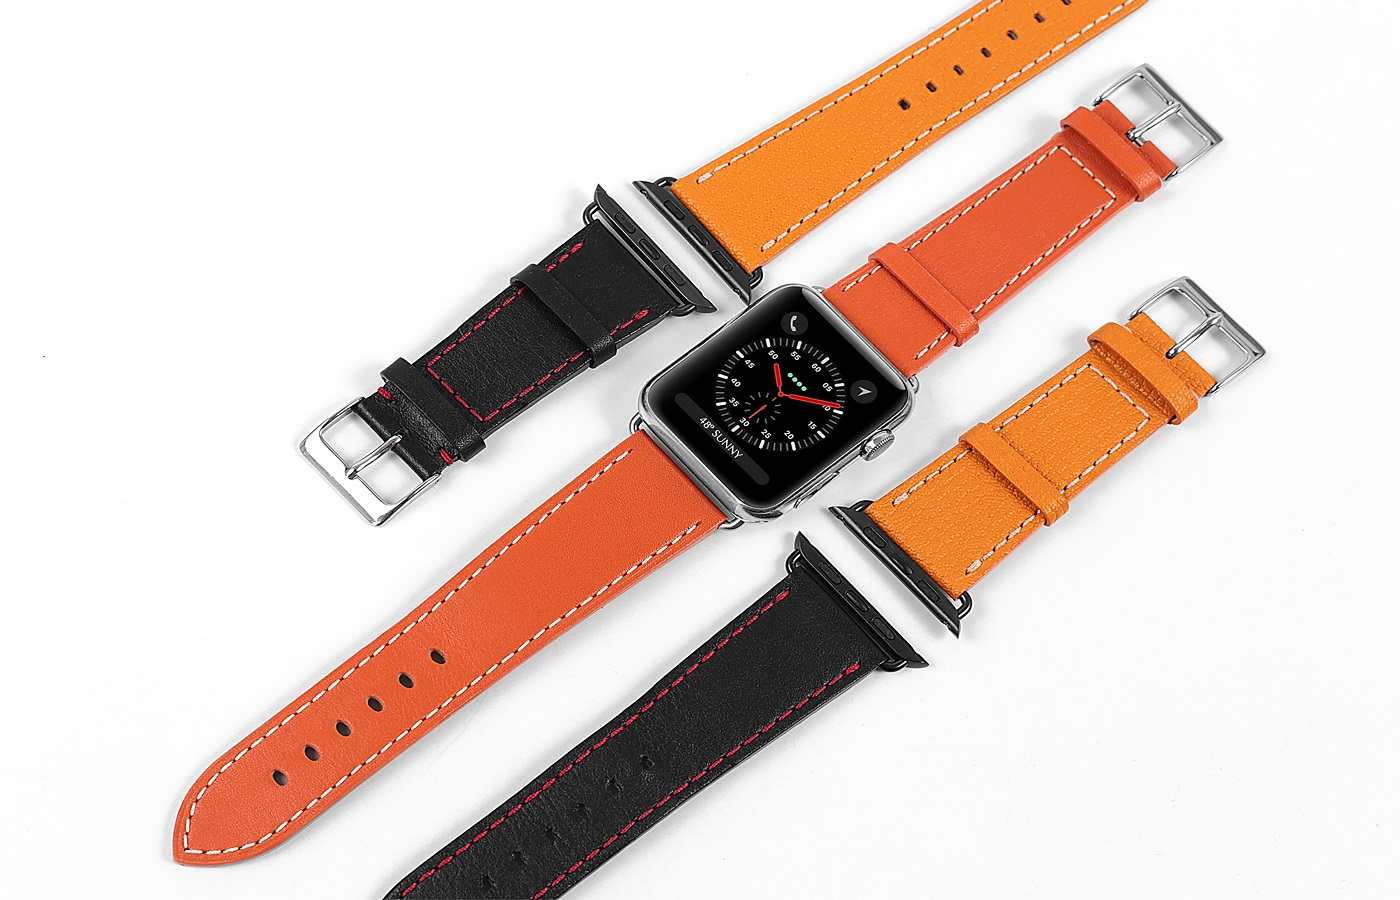 lederaccessoire uhrenarmbänder applewatch orange